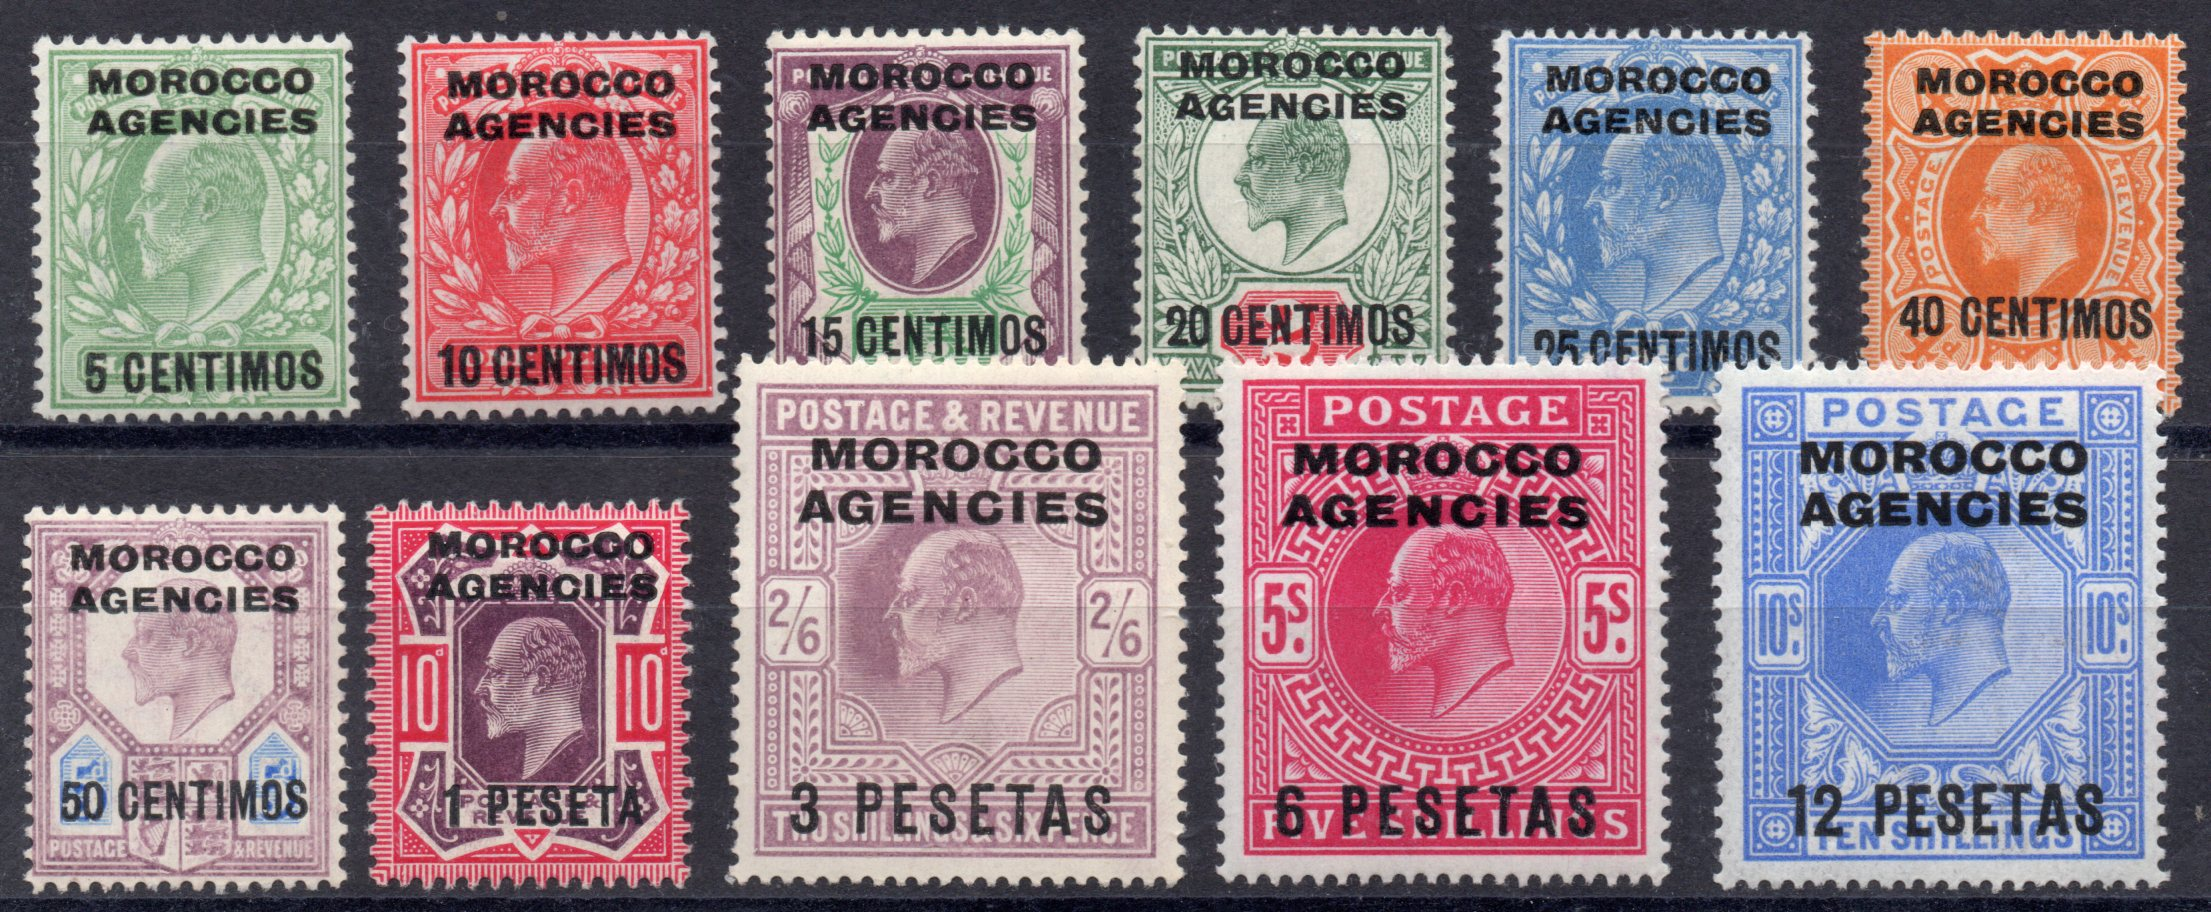 MOROCCO AGENCIES 1907 EDWARD VII SUPERB FRESH MINT 11 VALUES - SOLD